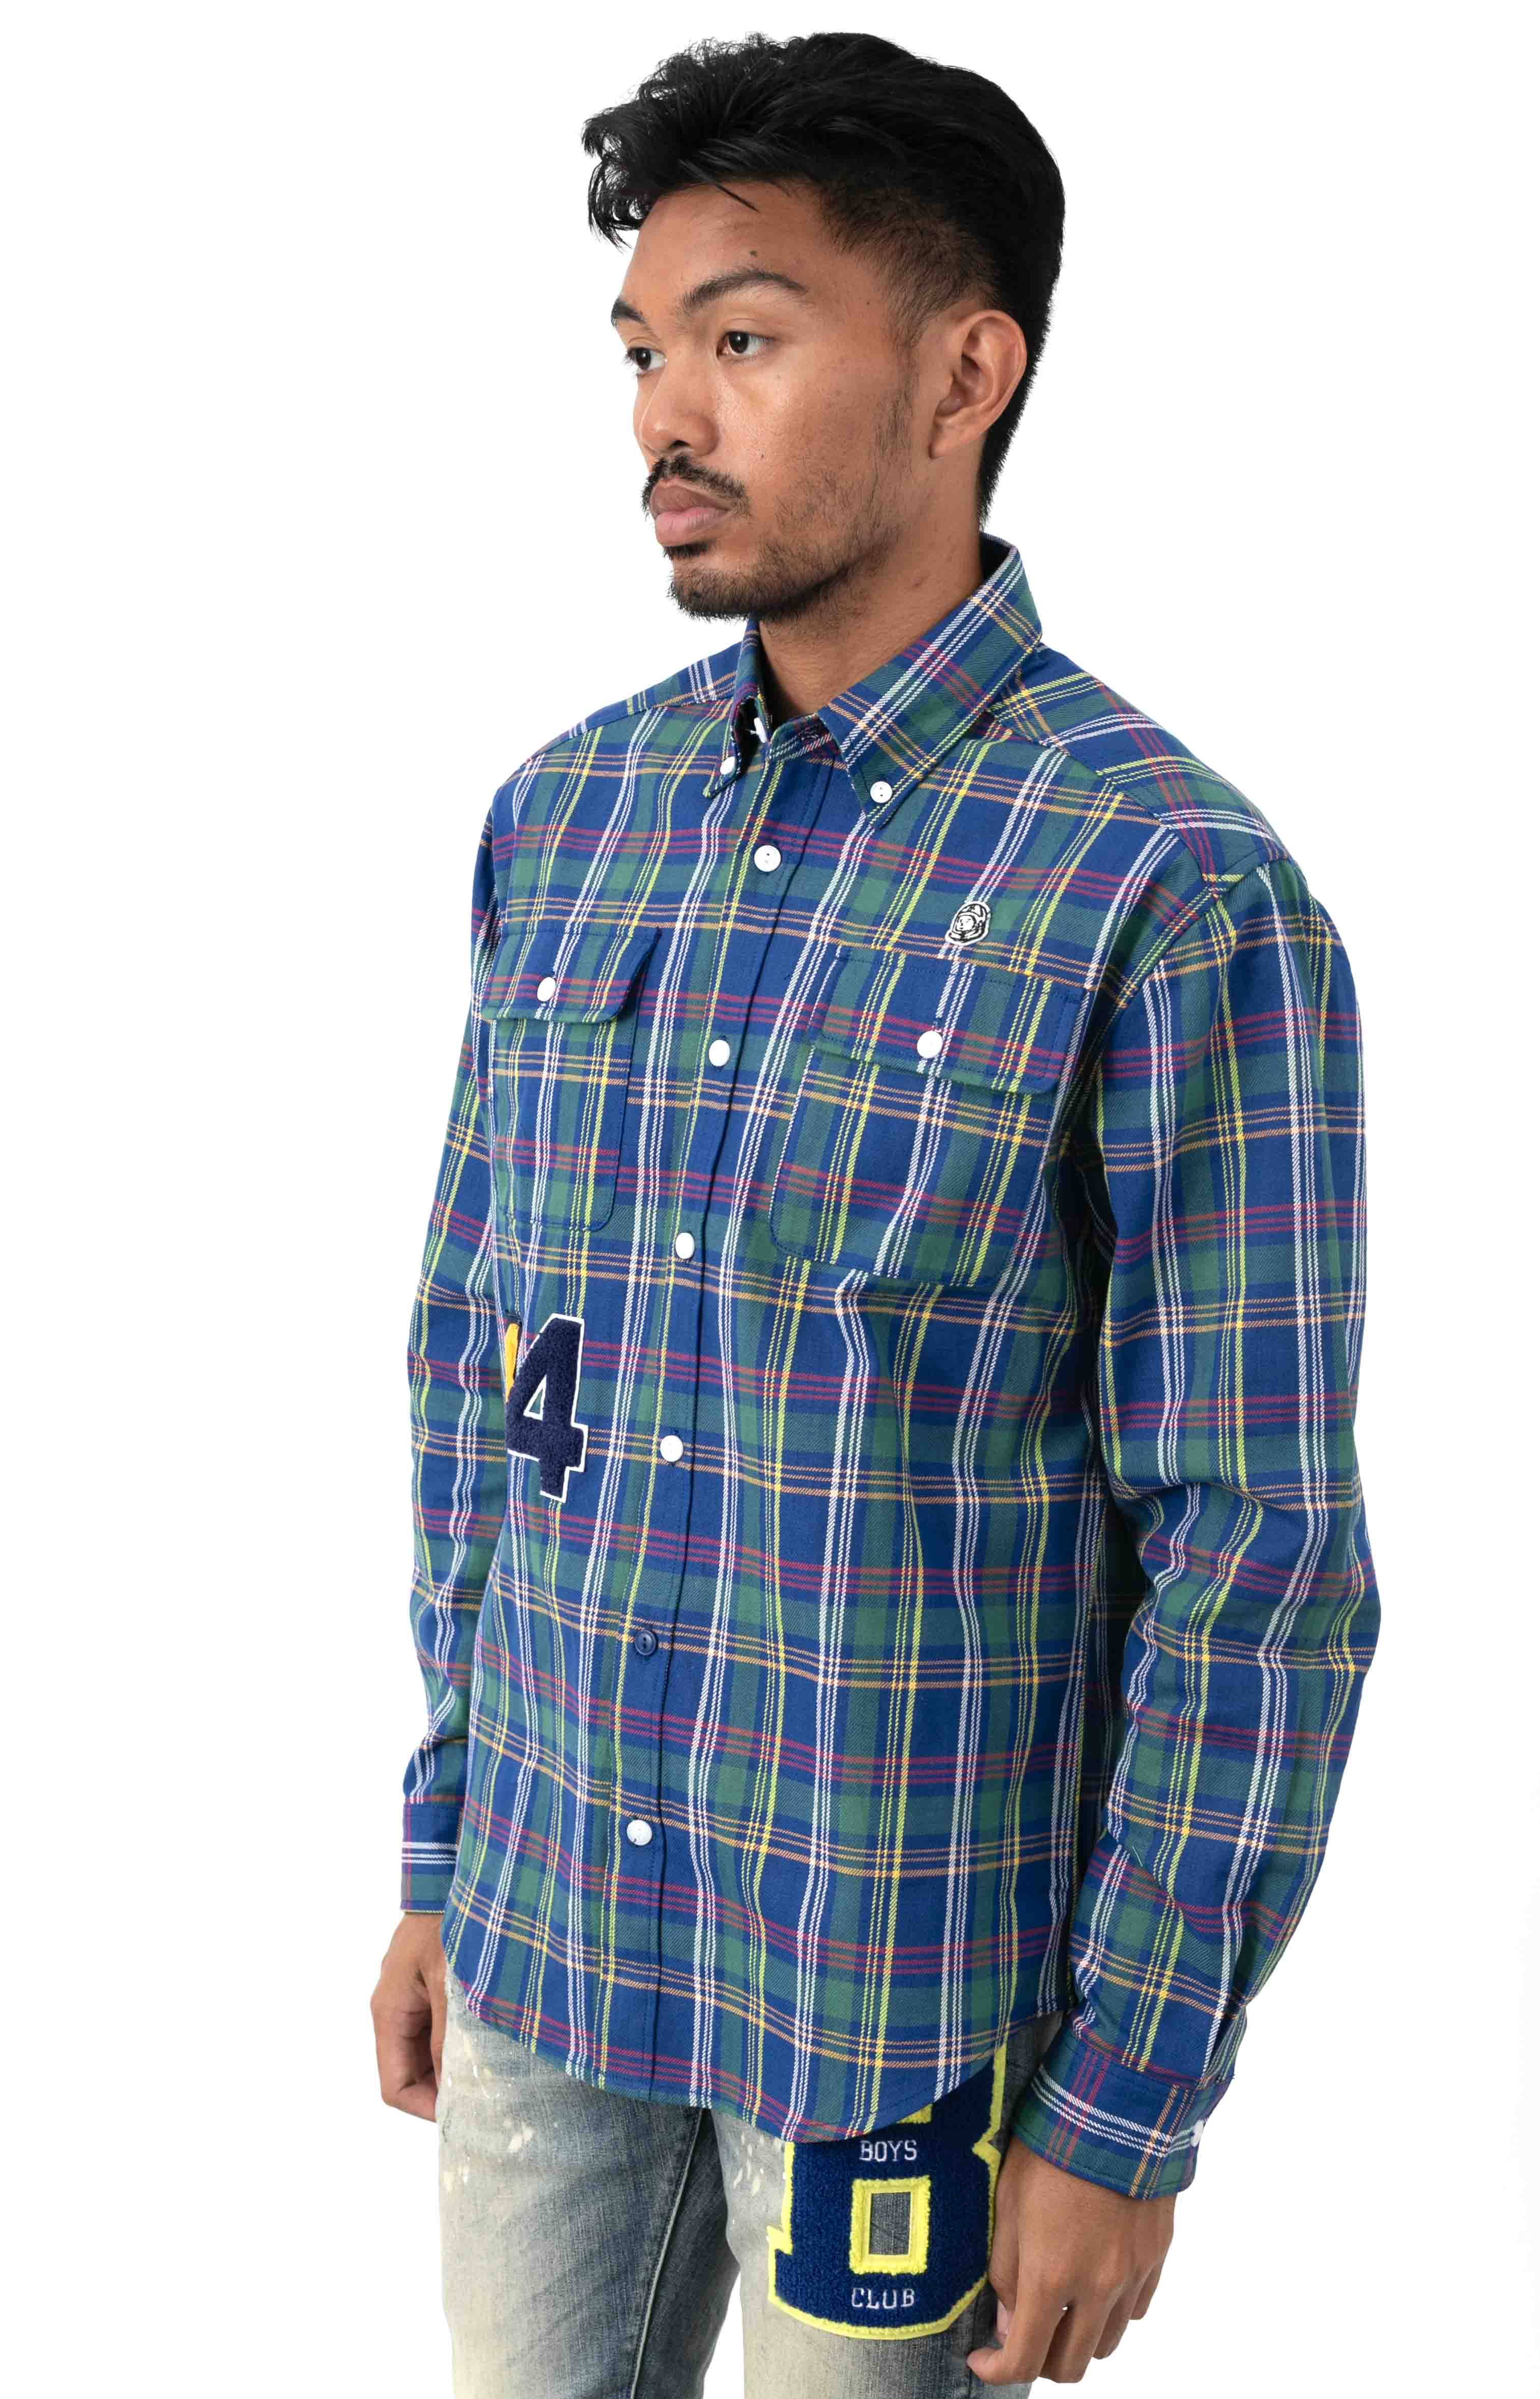 BB Kindling L/S Woven Button-Up Shirt  2